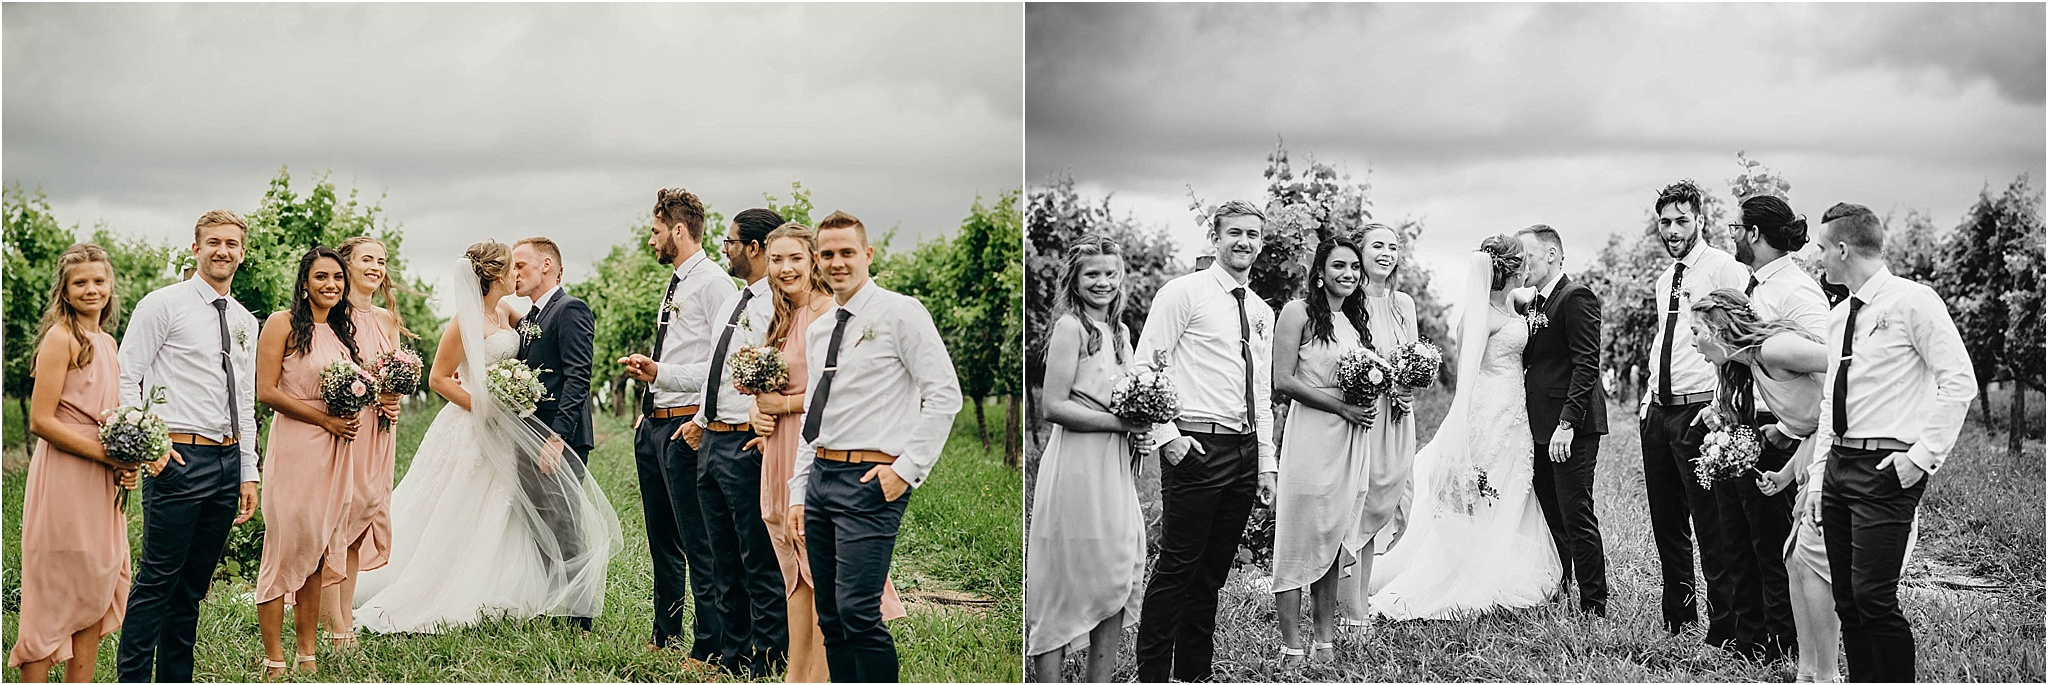 Auckland-Wedding-Photographer-Briana-Dave-Hunting-Lodge-Winery-Married_0061.jpg